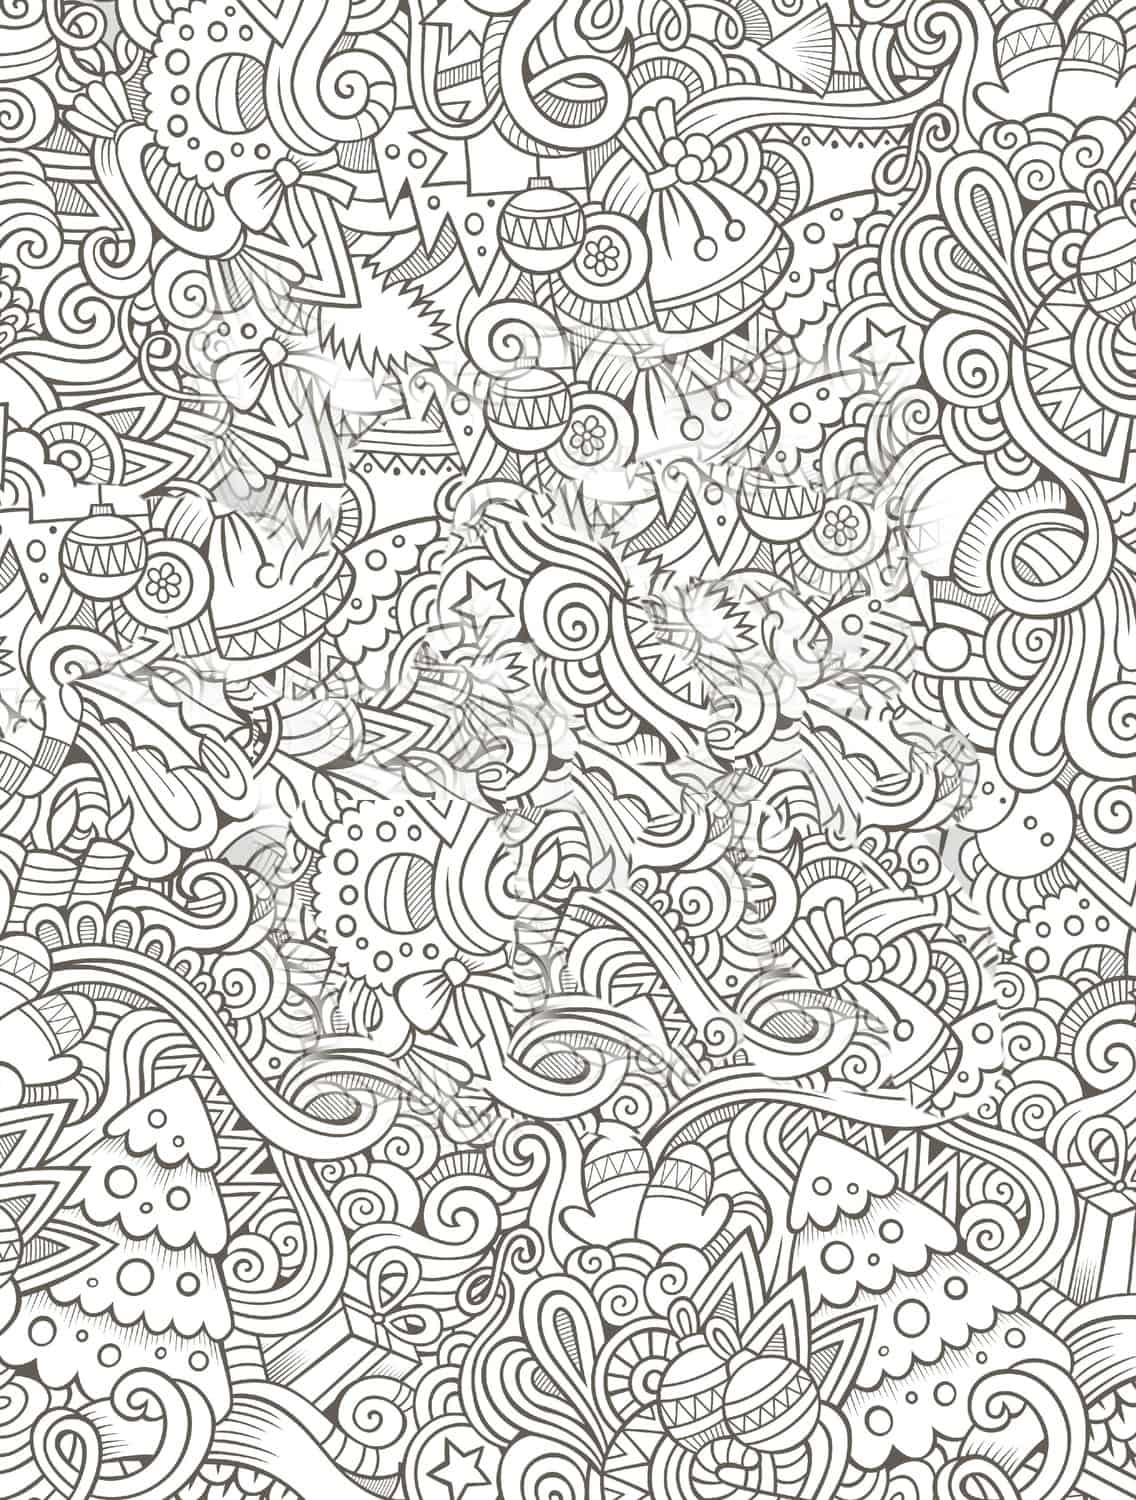 busy coloring page for free christmas gift small - Free Printable Coloring Sheets For Christmas